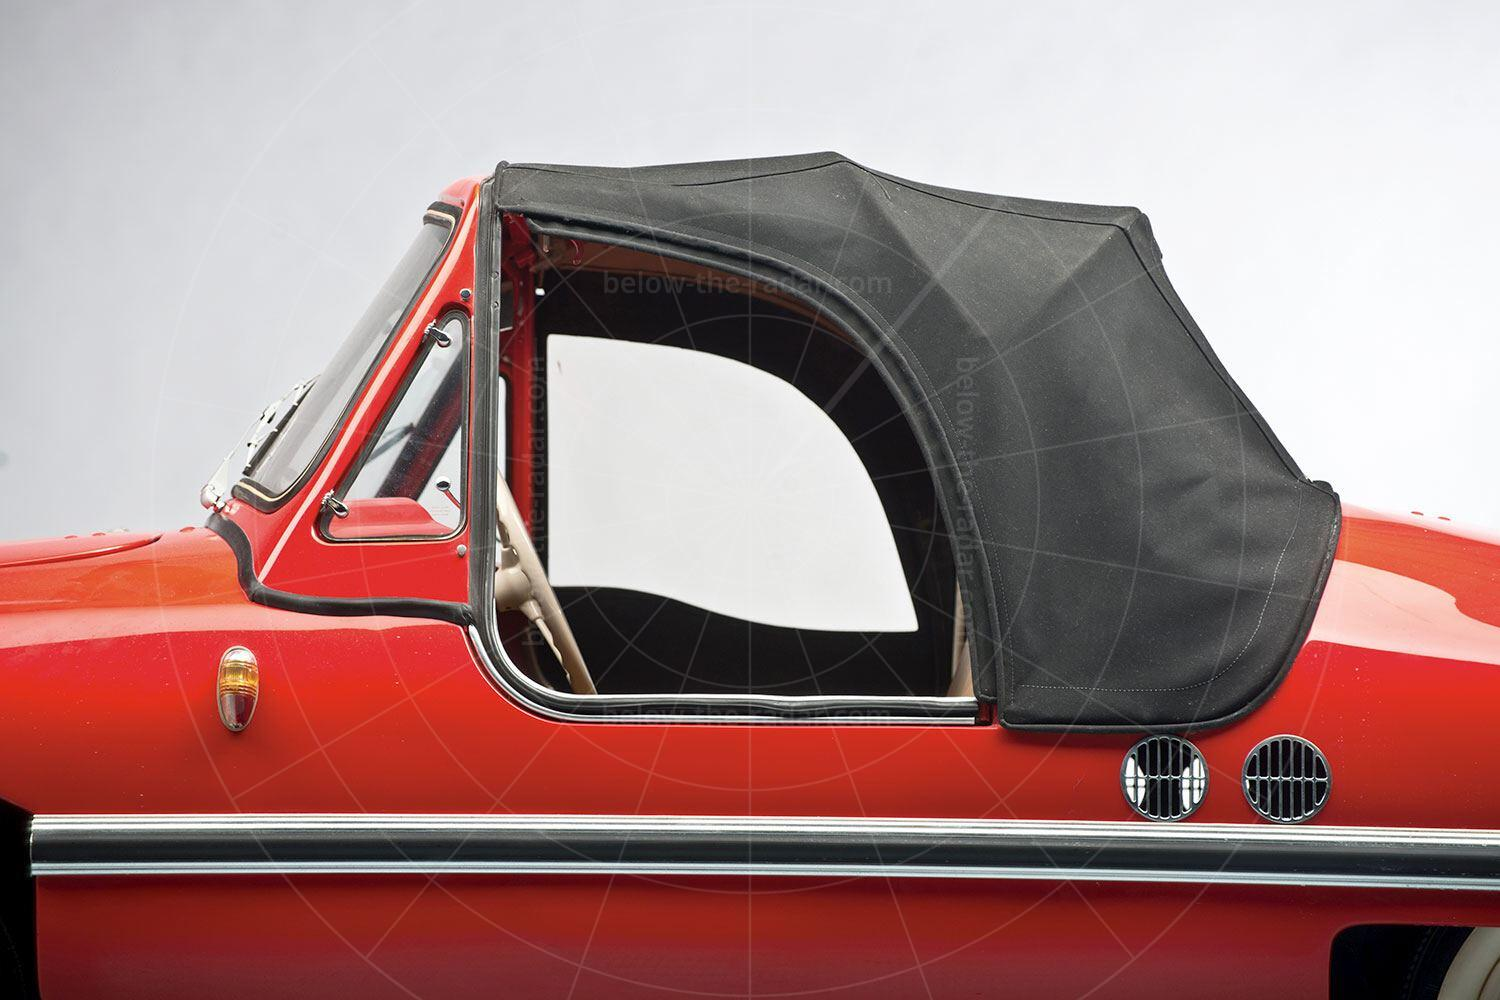 Victoria 250 soft top Pic: RM Sotheby's | Victoria 250 soft top